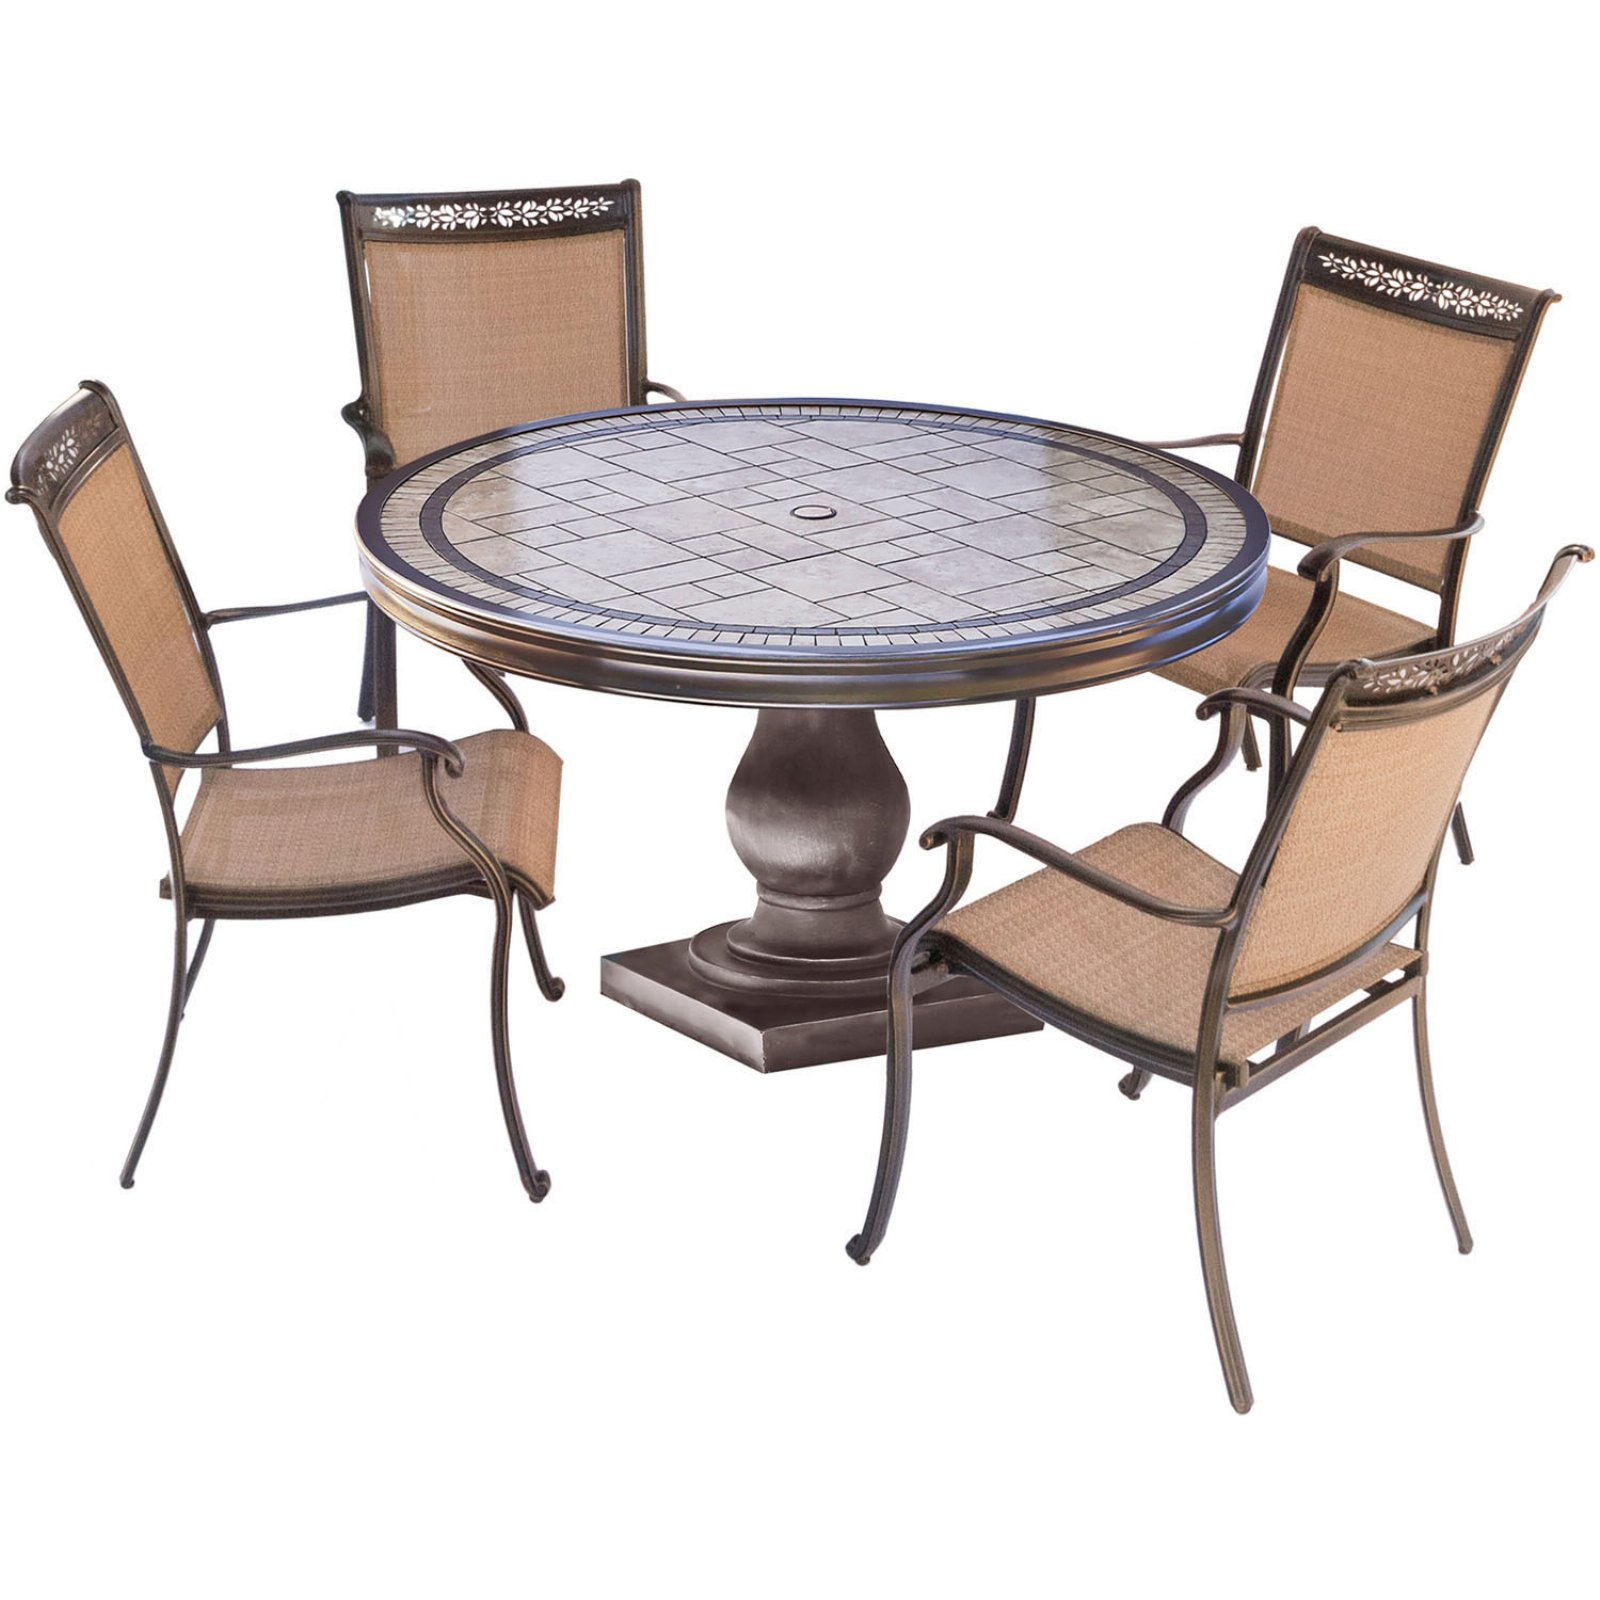 Hanover Fontana 5-Piece Outdoor Dining Set with Stationary Chairs and Tile-Top Table